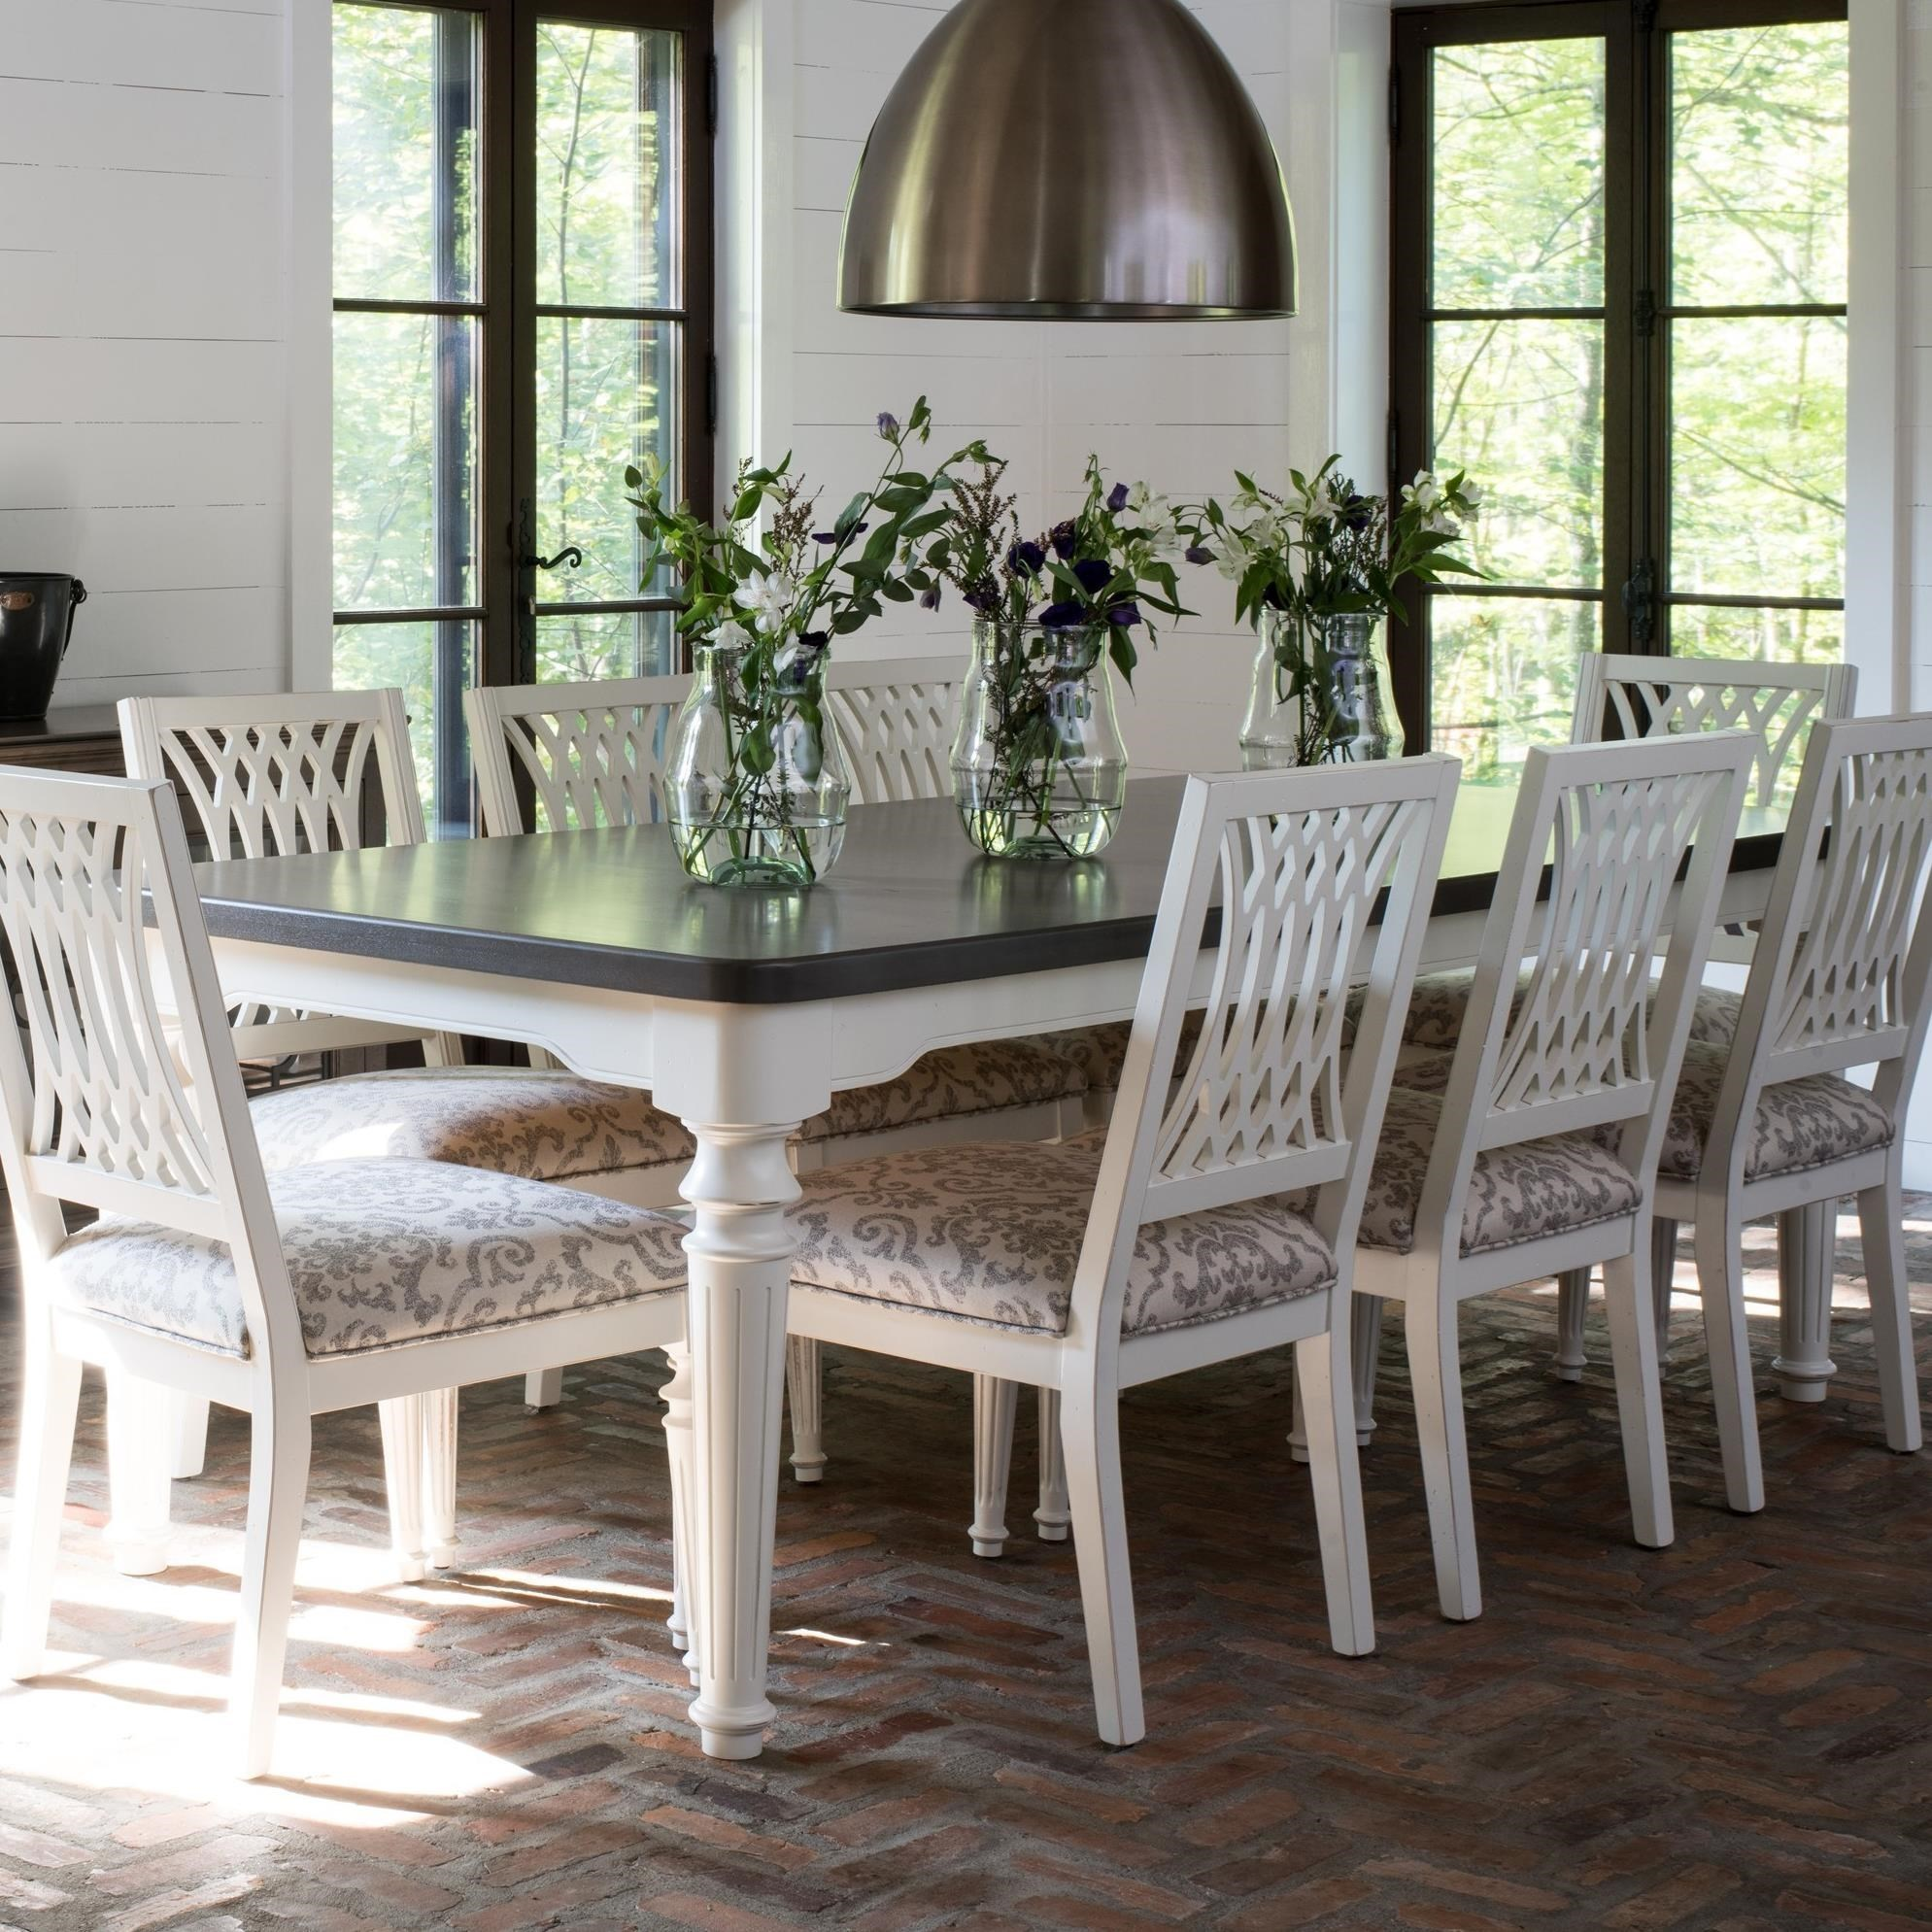 farmhouse chic furniture. Canadel Farmhouse ChicCustomizable Rectangular Dining Table Chic Furniture